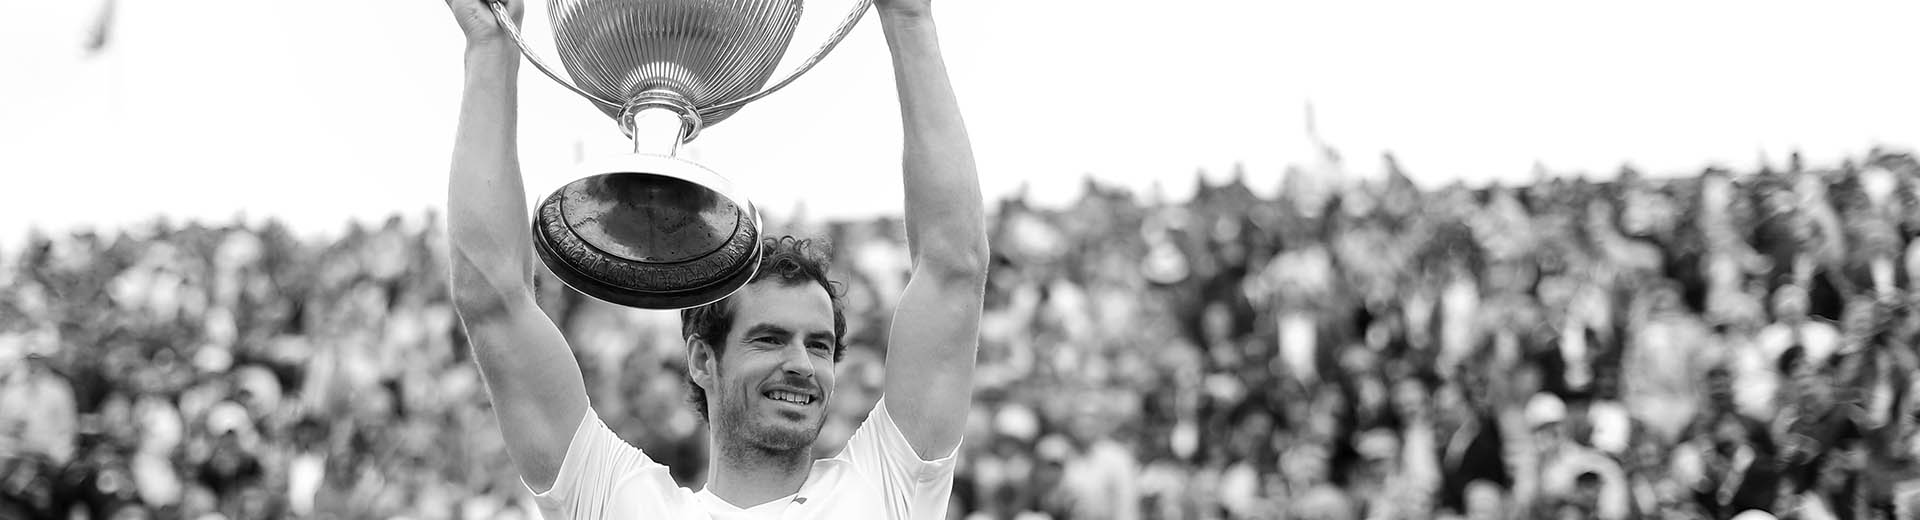 Murray to start title defence on Tuesday of Queen's